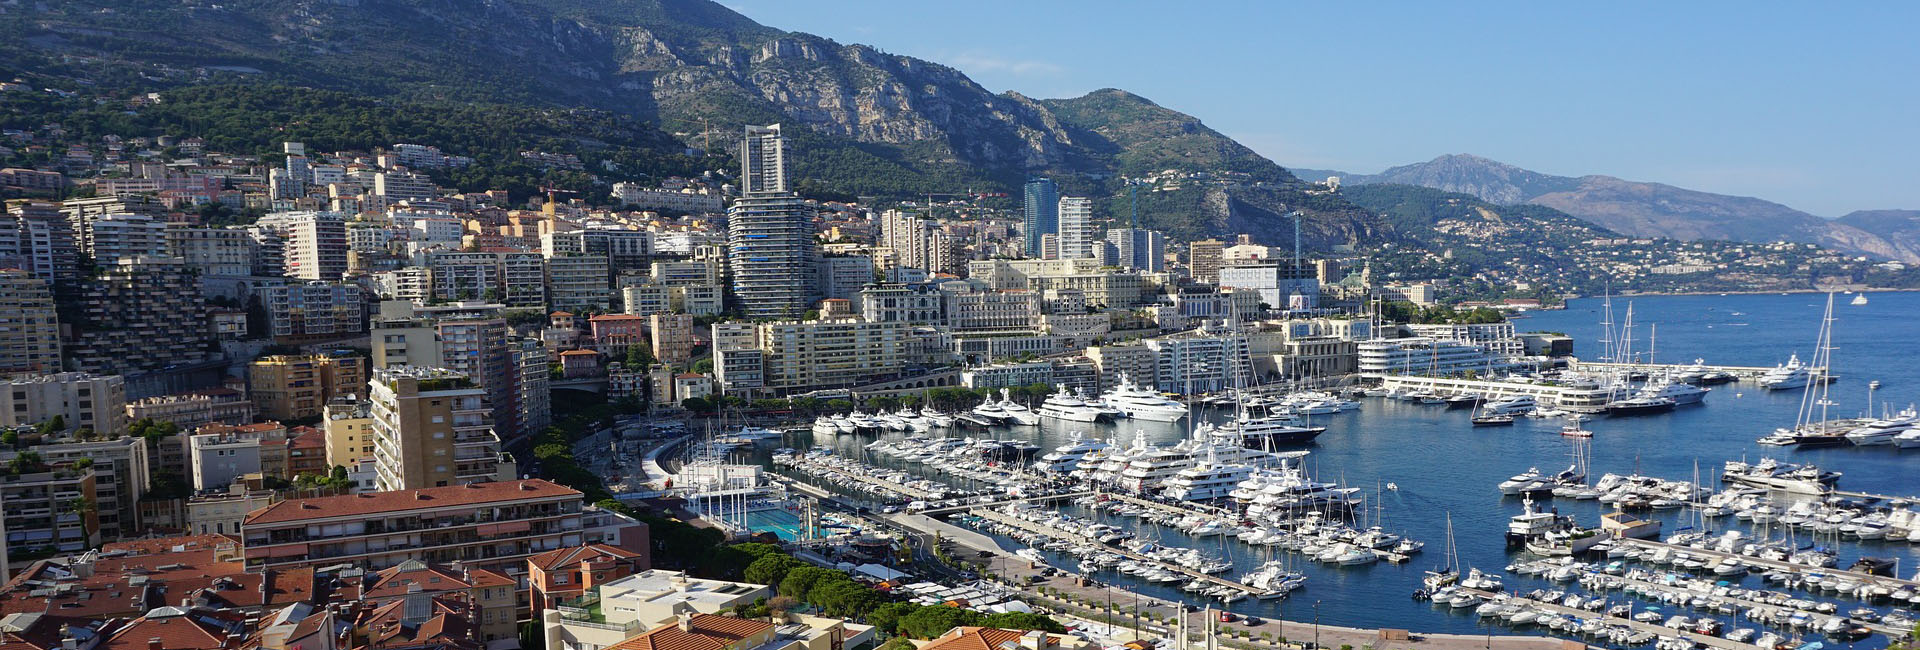 Visit Monaco and its Oceanographic Museum!